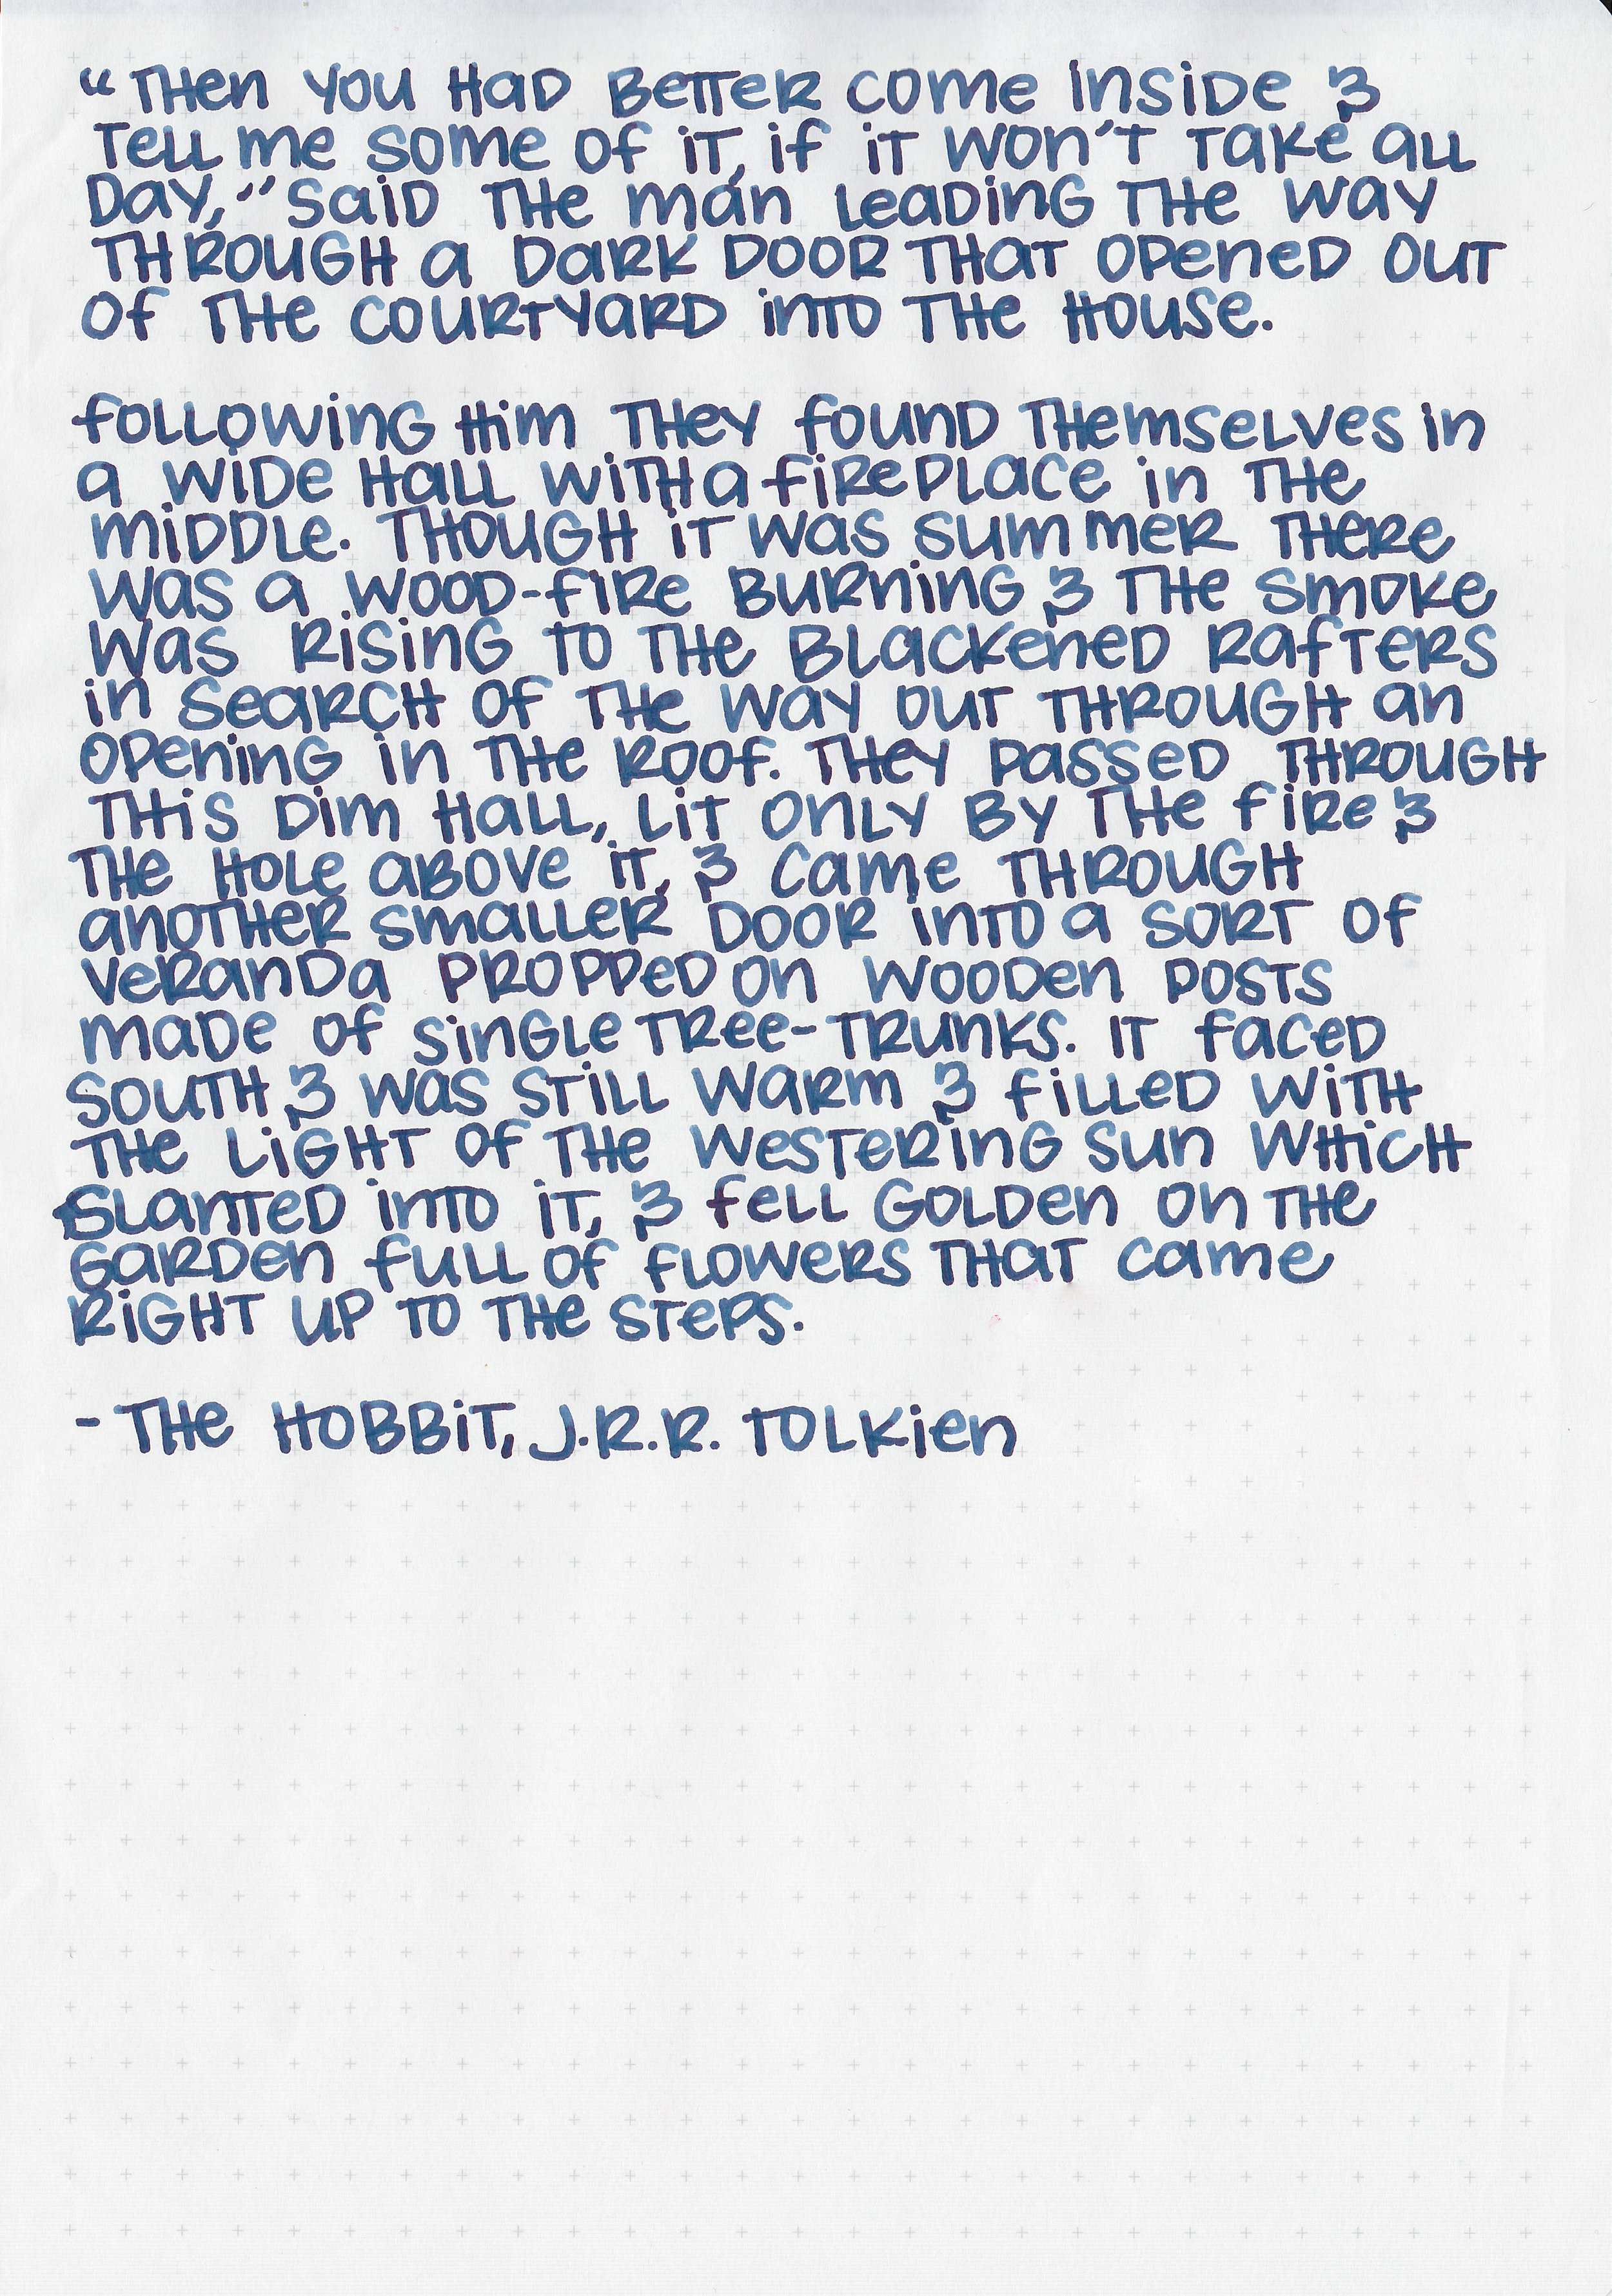 Longer writing: - I used a broad Pelikan M805 Vibrant Blue on Tomoe River paper. The ink had an average flow.